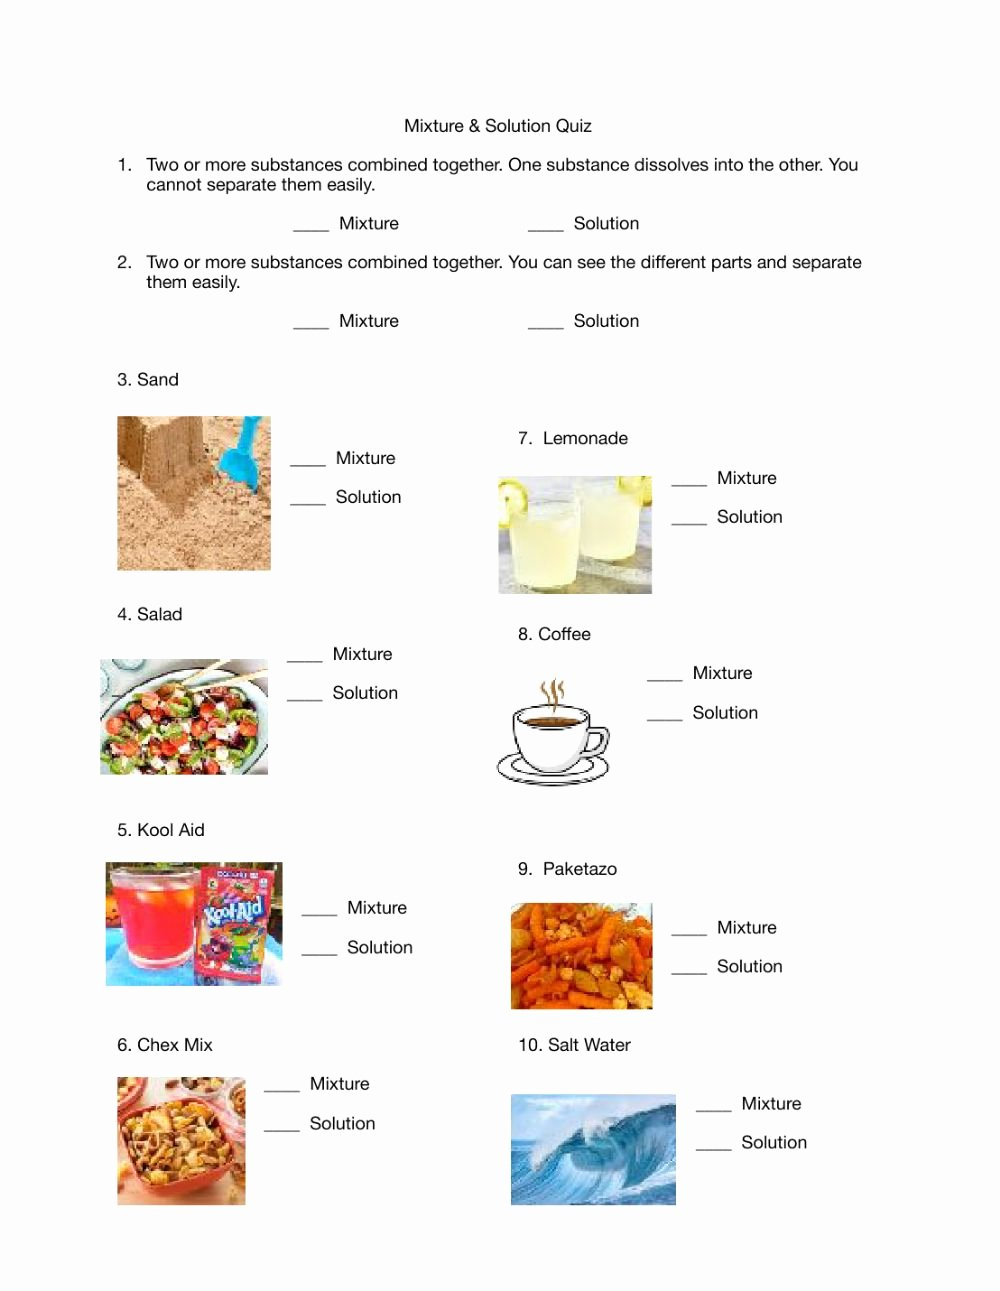 Mixtures and solutions Worksheet Answers Lovely Mixture and solution Quiz Interactive Worksheet